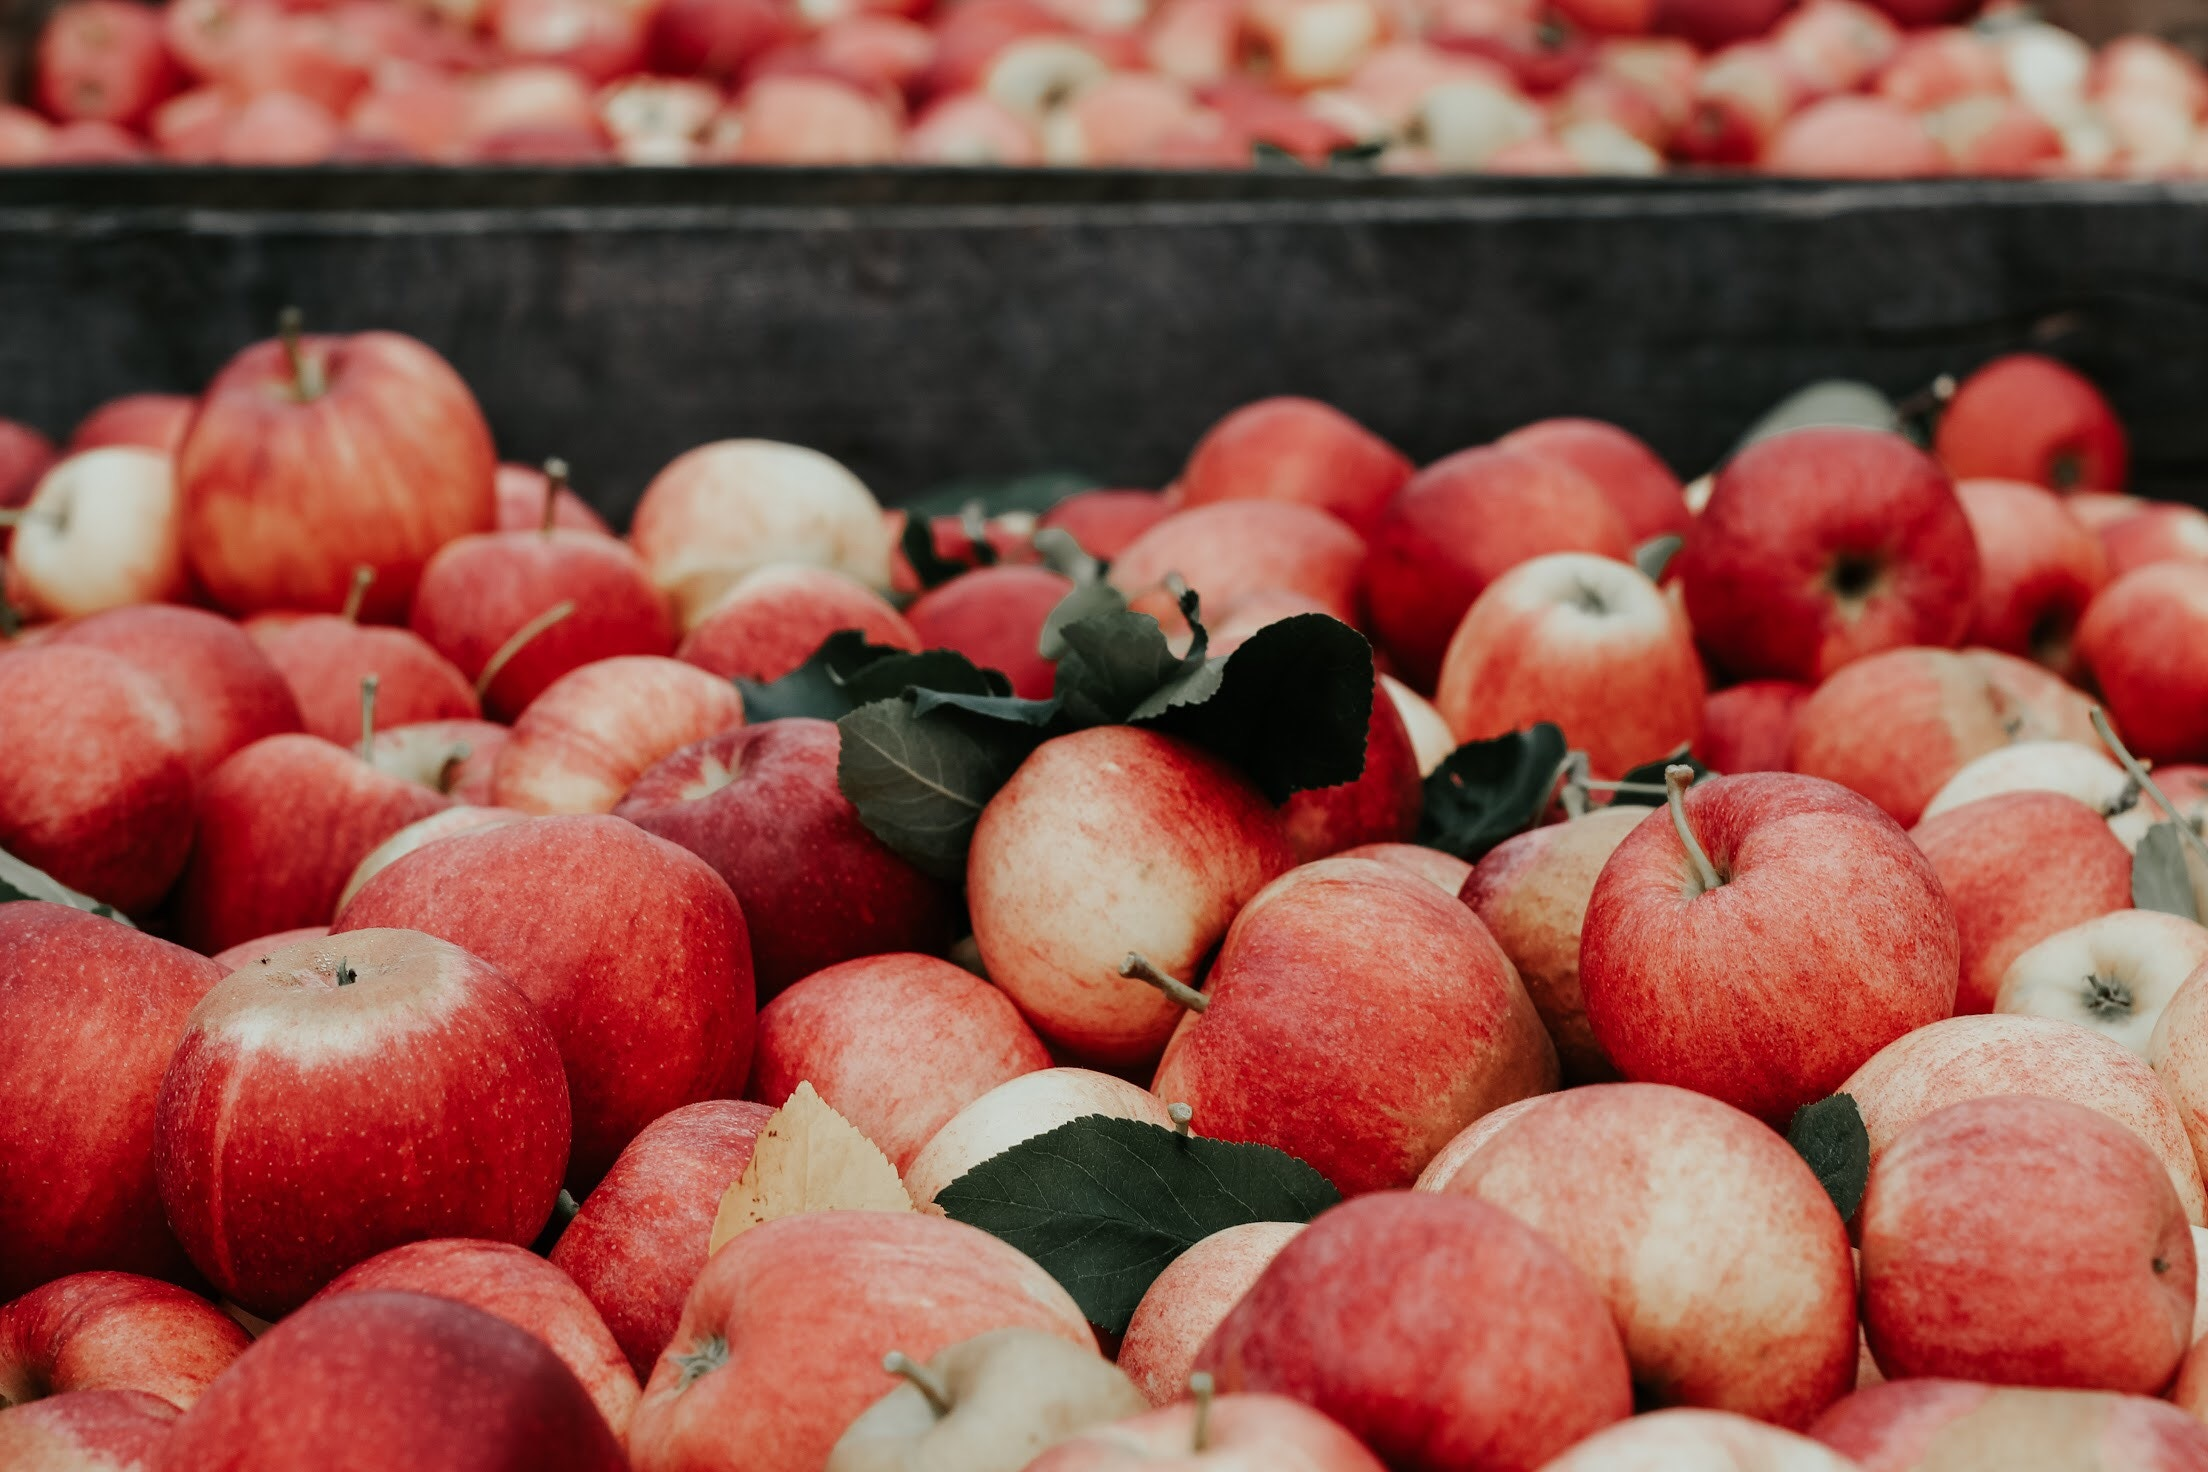 - Economic status and food availability should not be ignored as a limiting or expanding factor when making food choices. Whether it's Whole Foods, the farmer's market or the corner store, our exposure to foods is pre-determined by where we source it.